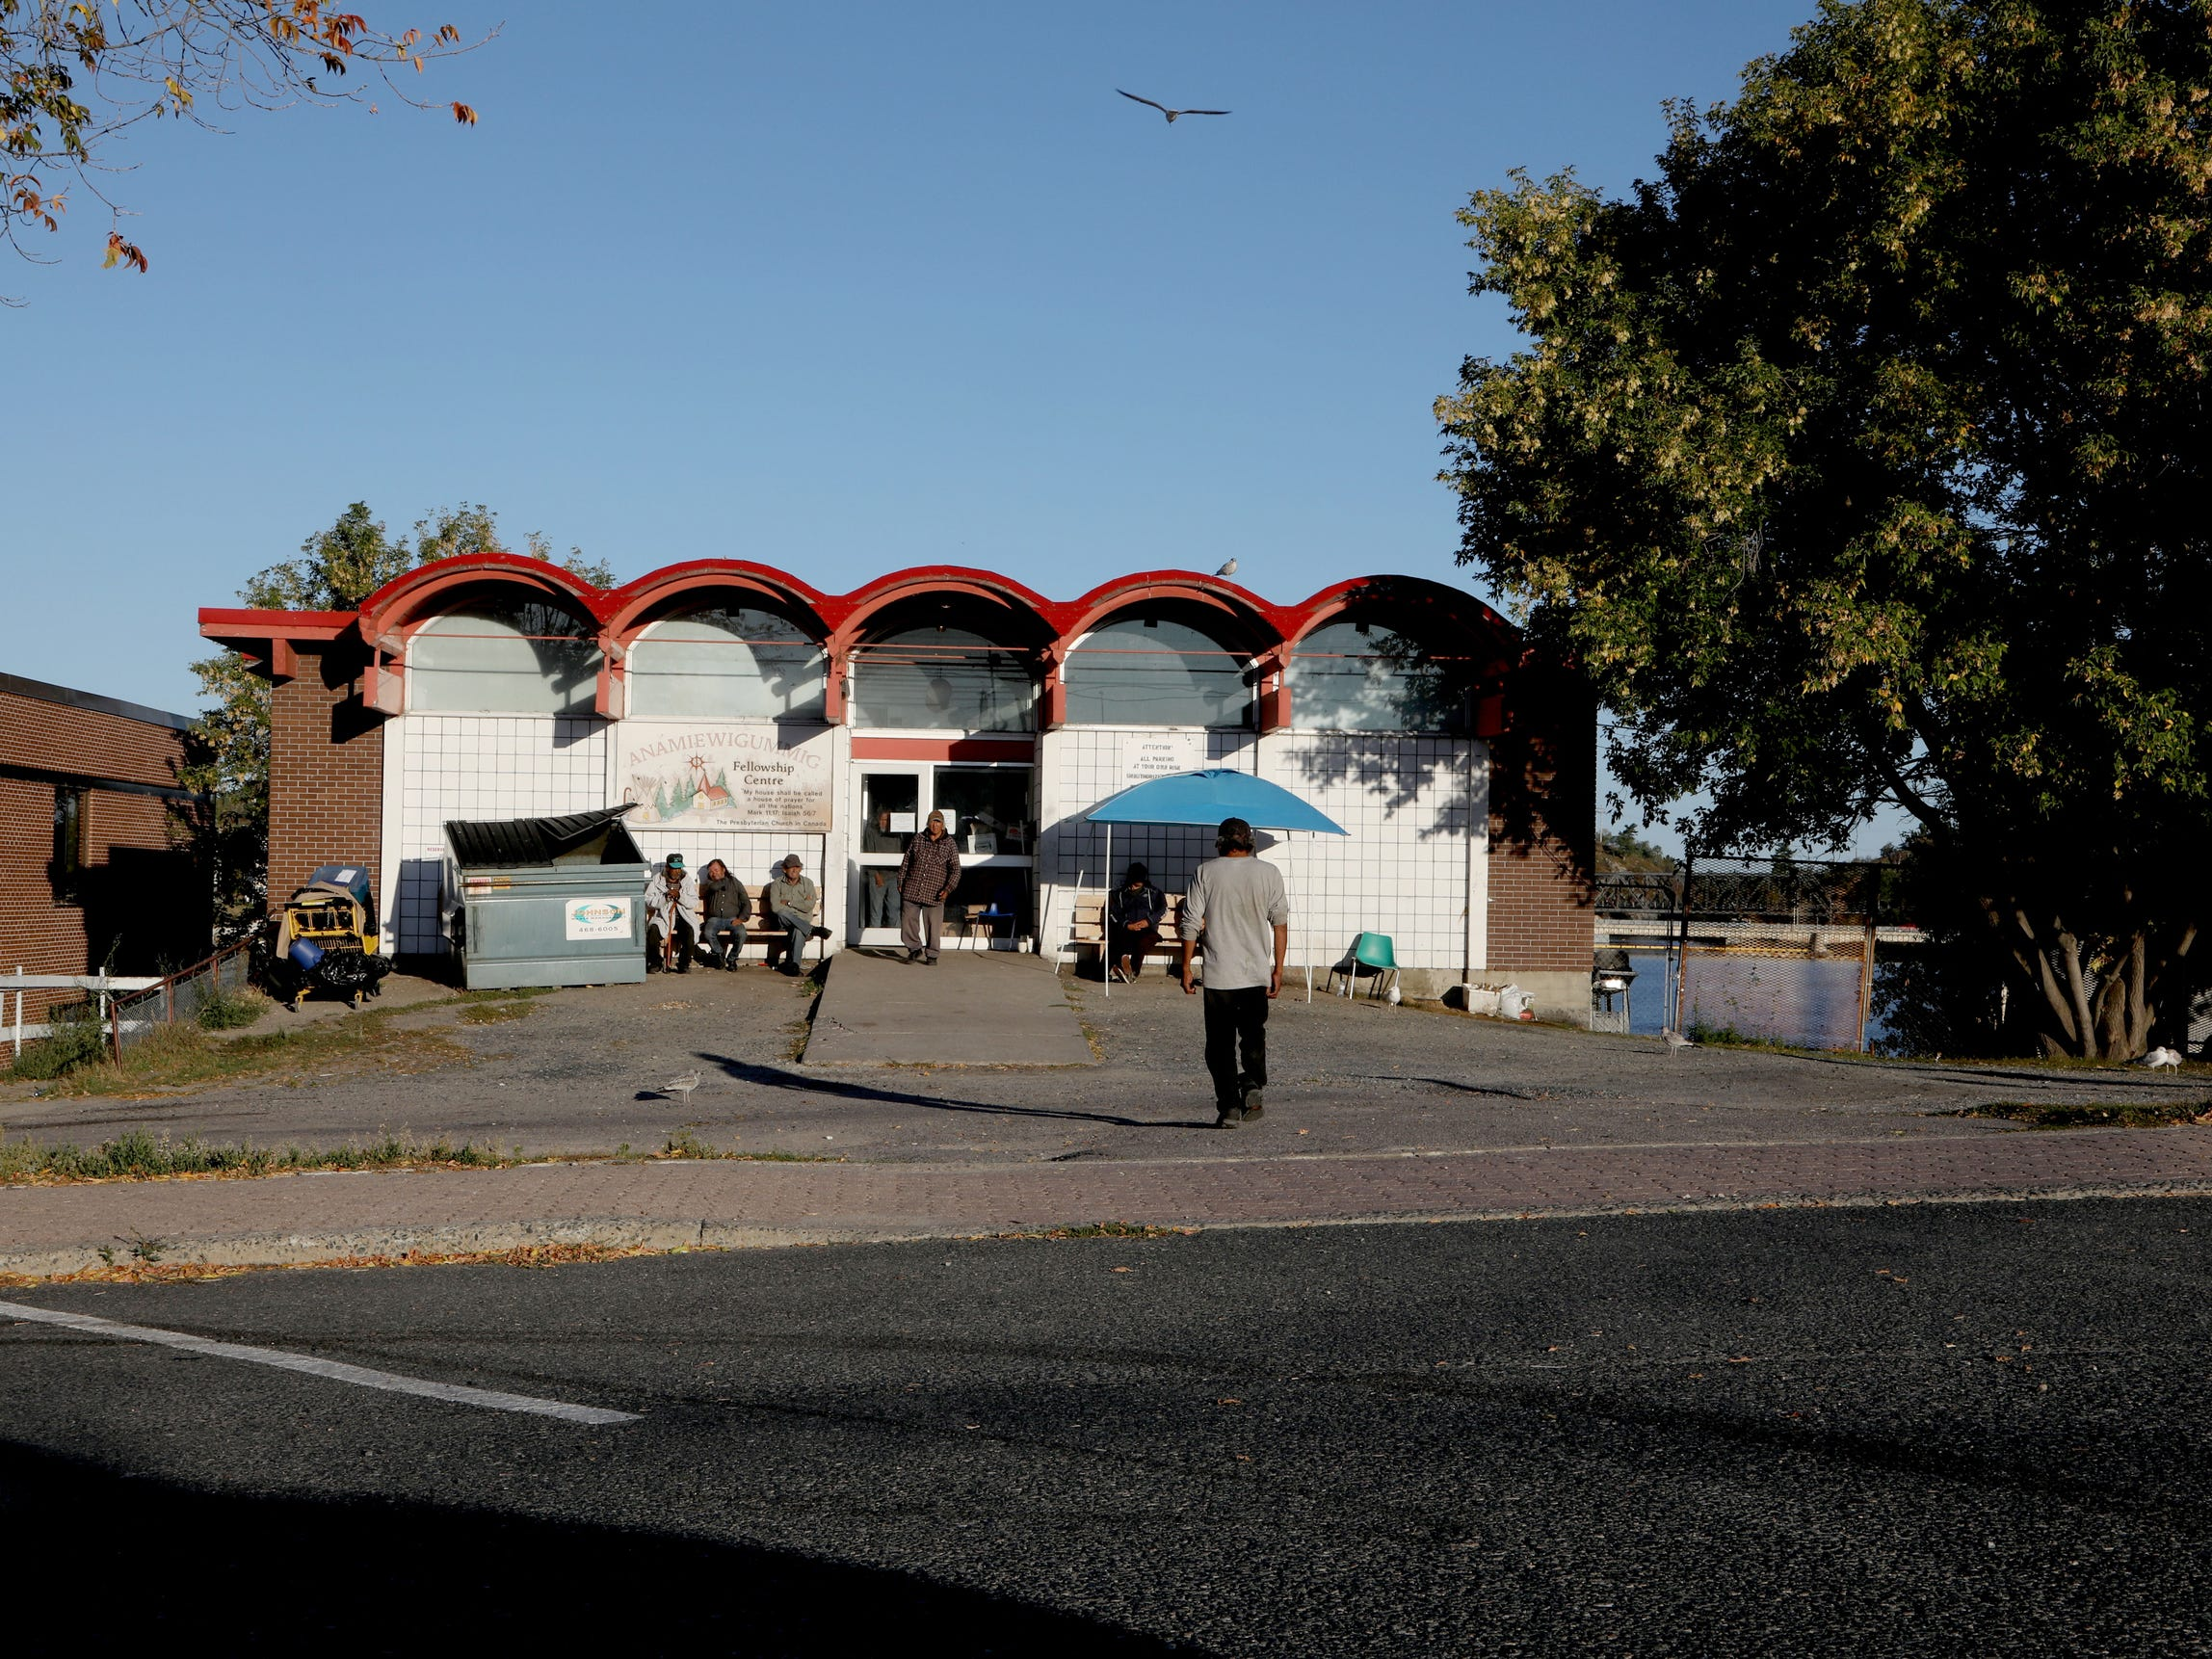 The Anamiewigummig Fellowship Centre as seen here is where Joe Murphy stops by daily to shower and sometimes pick up clothing. Murphy tends to be a loner and not associate with others while he is there.